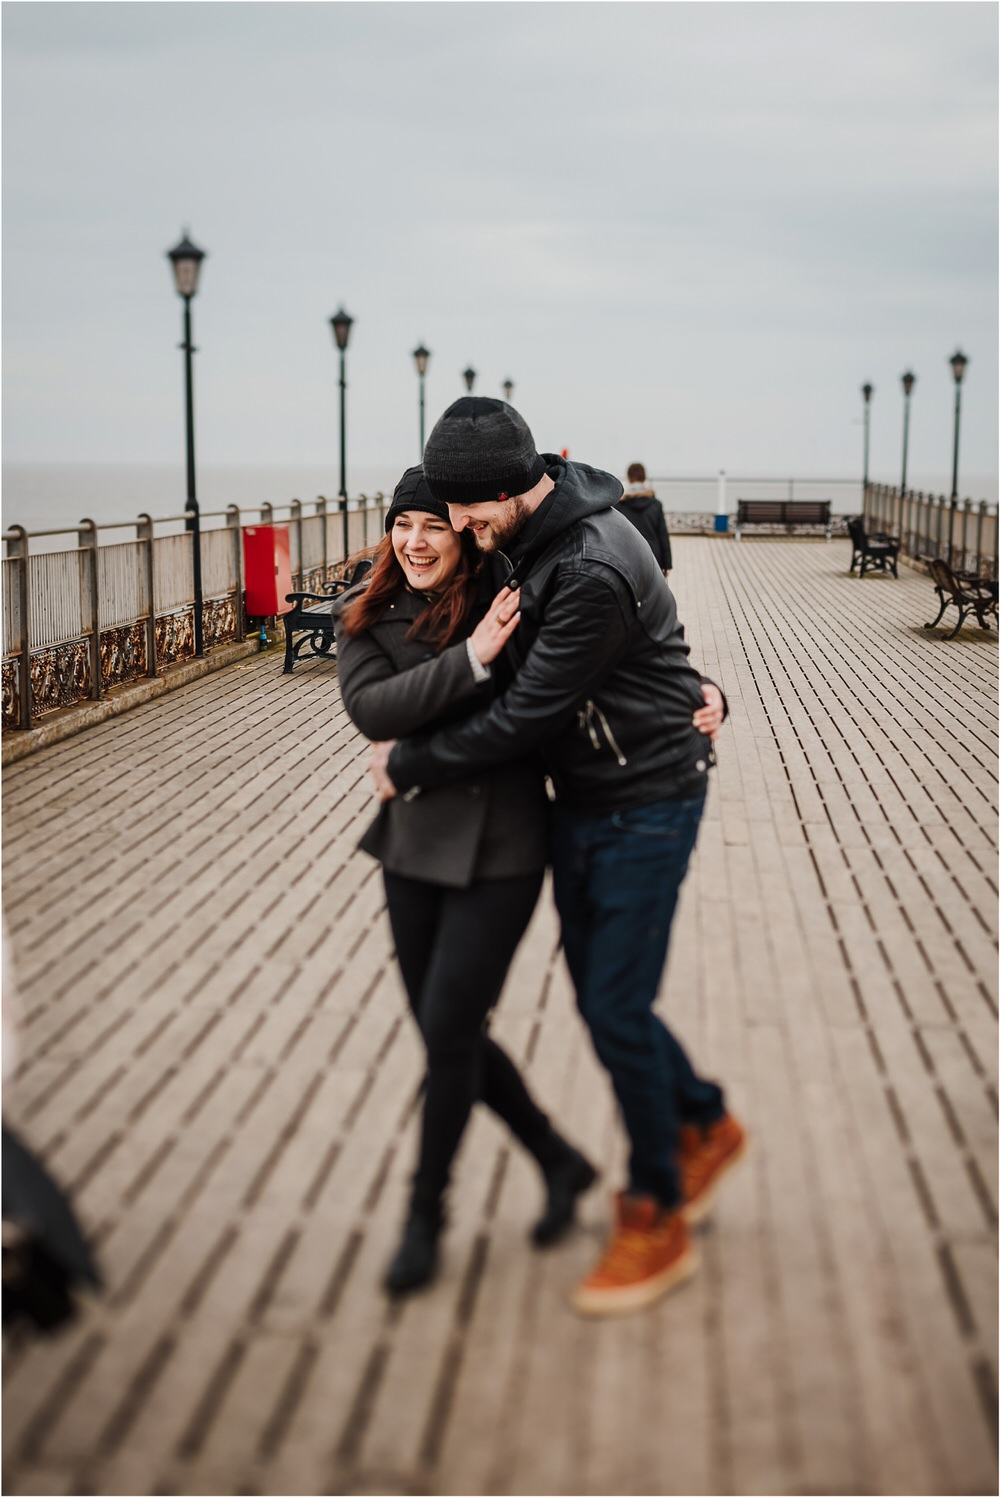 skegness uk england great britain photographer wedding engagement session photoshoot lincolnshire recommended photography 0076.jpg